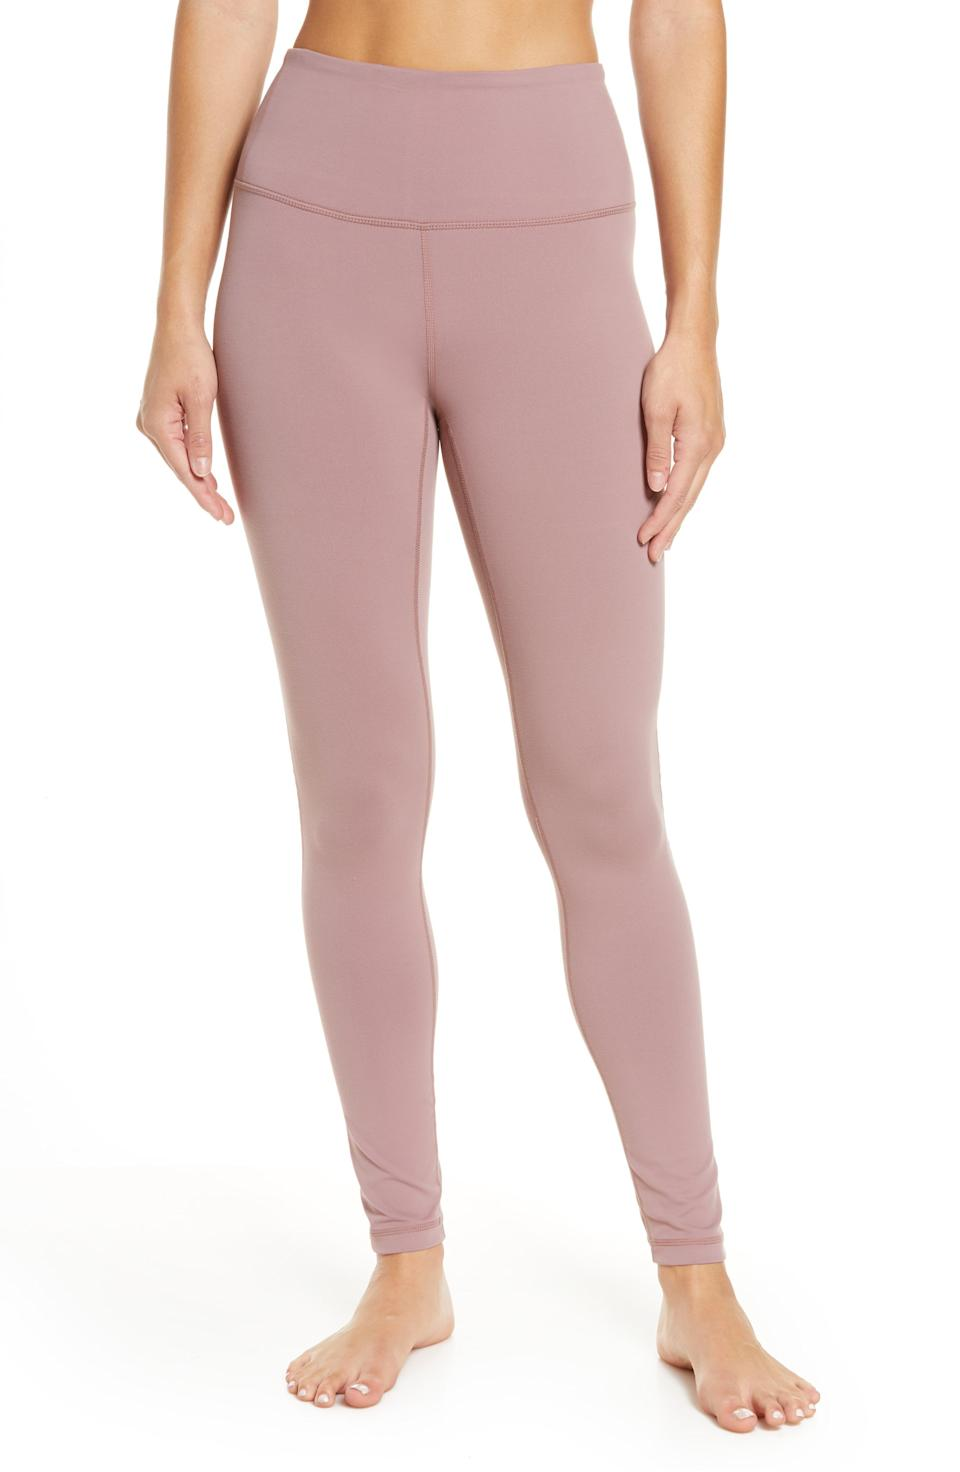 """<p><strong>ZELLA</strong></p><p>nordstrom.com</p><p><a href=""""https://go.redirectingat.com?id=74968X1596630&url=https%3A%2F%2Fwww.nordstrom.com%2Fs%2Fzella-live-in-high-waist-leggings%2F4312529&sref=https%3A%2F%2Fwww.cosmopolitan.com%2Fstyle-beauty%2Ffashion%2Fg33597174%2Fnordstrom-anniversary-sale-2020%2F"""" rel=""""nofollow noopener"""" target=""""_blank"""" data-ylk=""""slk:Shop Now"""" class=""""link rapid-noclick-resp"""">Shop Now</a></p><p>Sadly, this exact color is already sold out, but the black and gray ones are still up for grabs.</p><p><strong><del>$59</del><br>$38</strong></p>"""